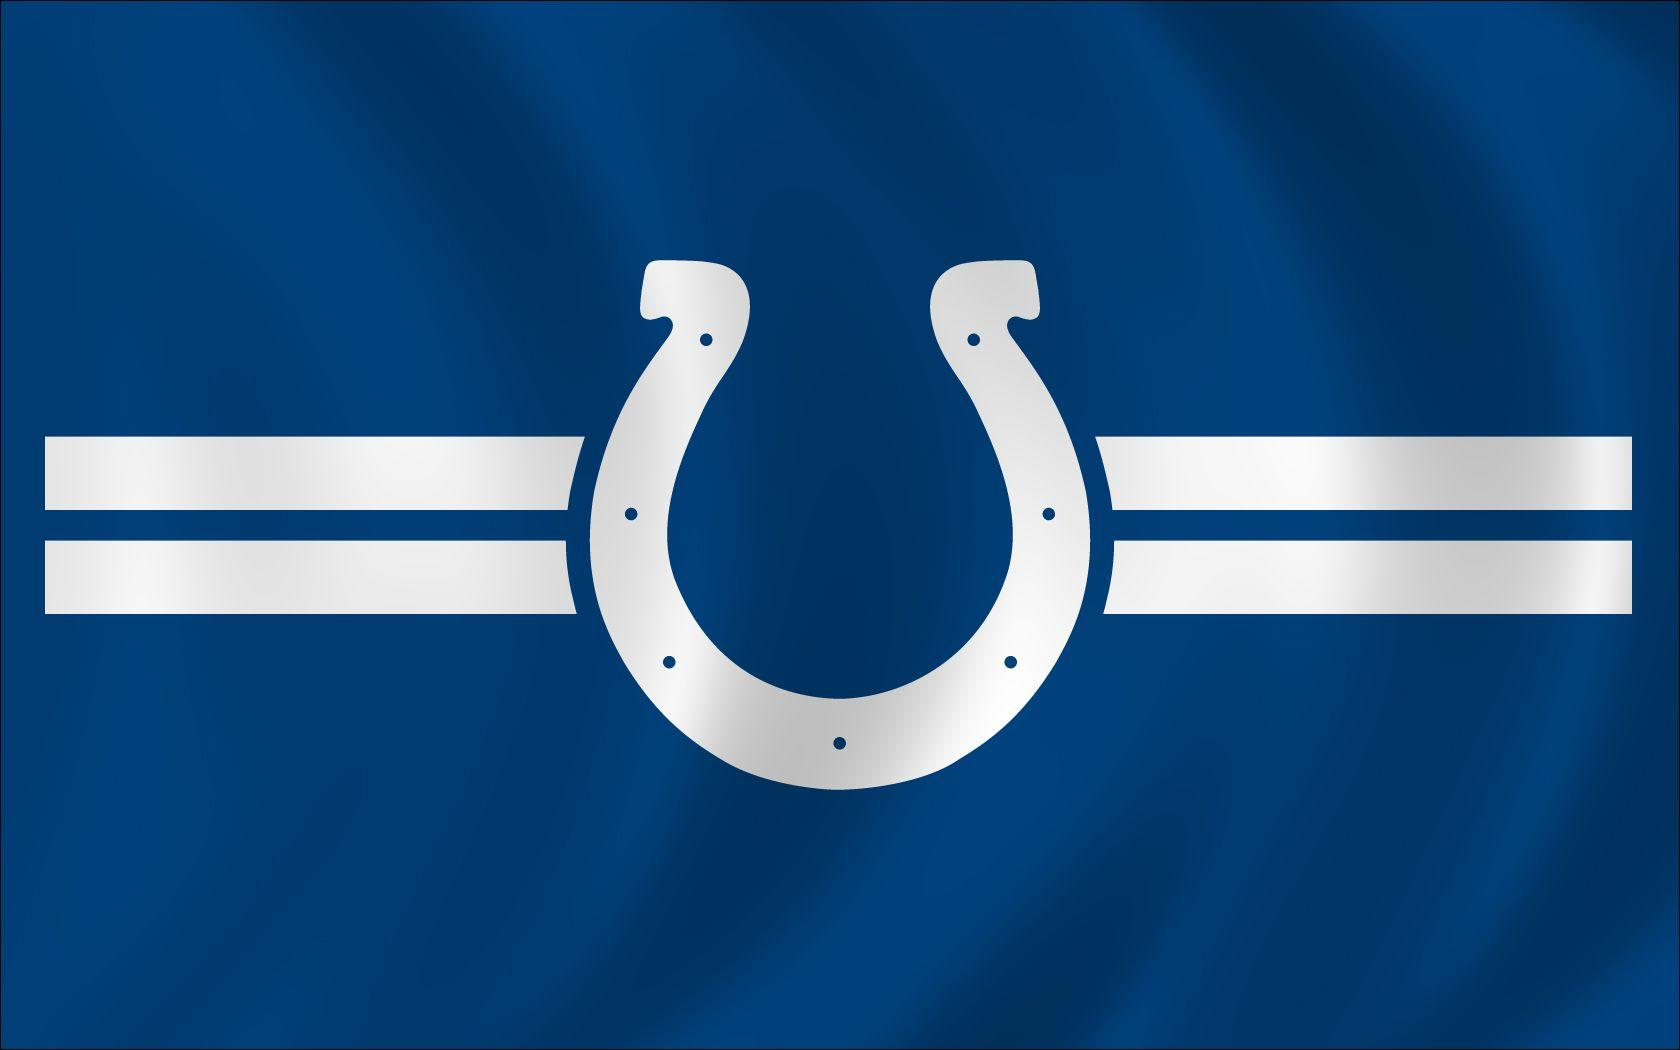 Indianapolis Colts Wallpapers 2015 - Wallpaper Cave